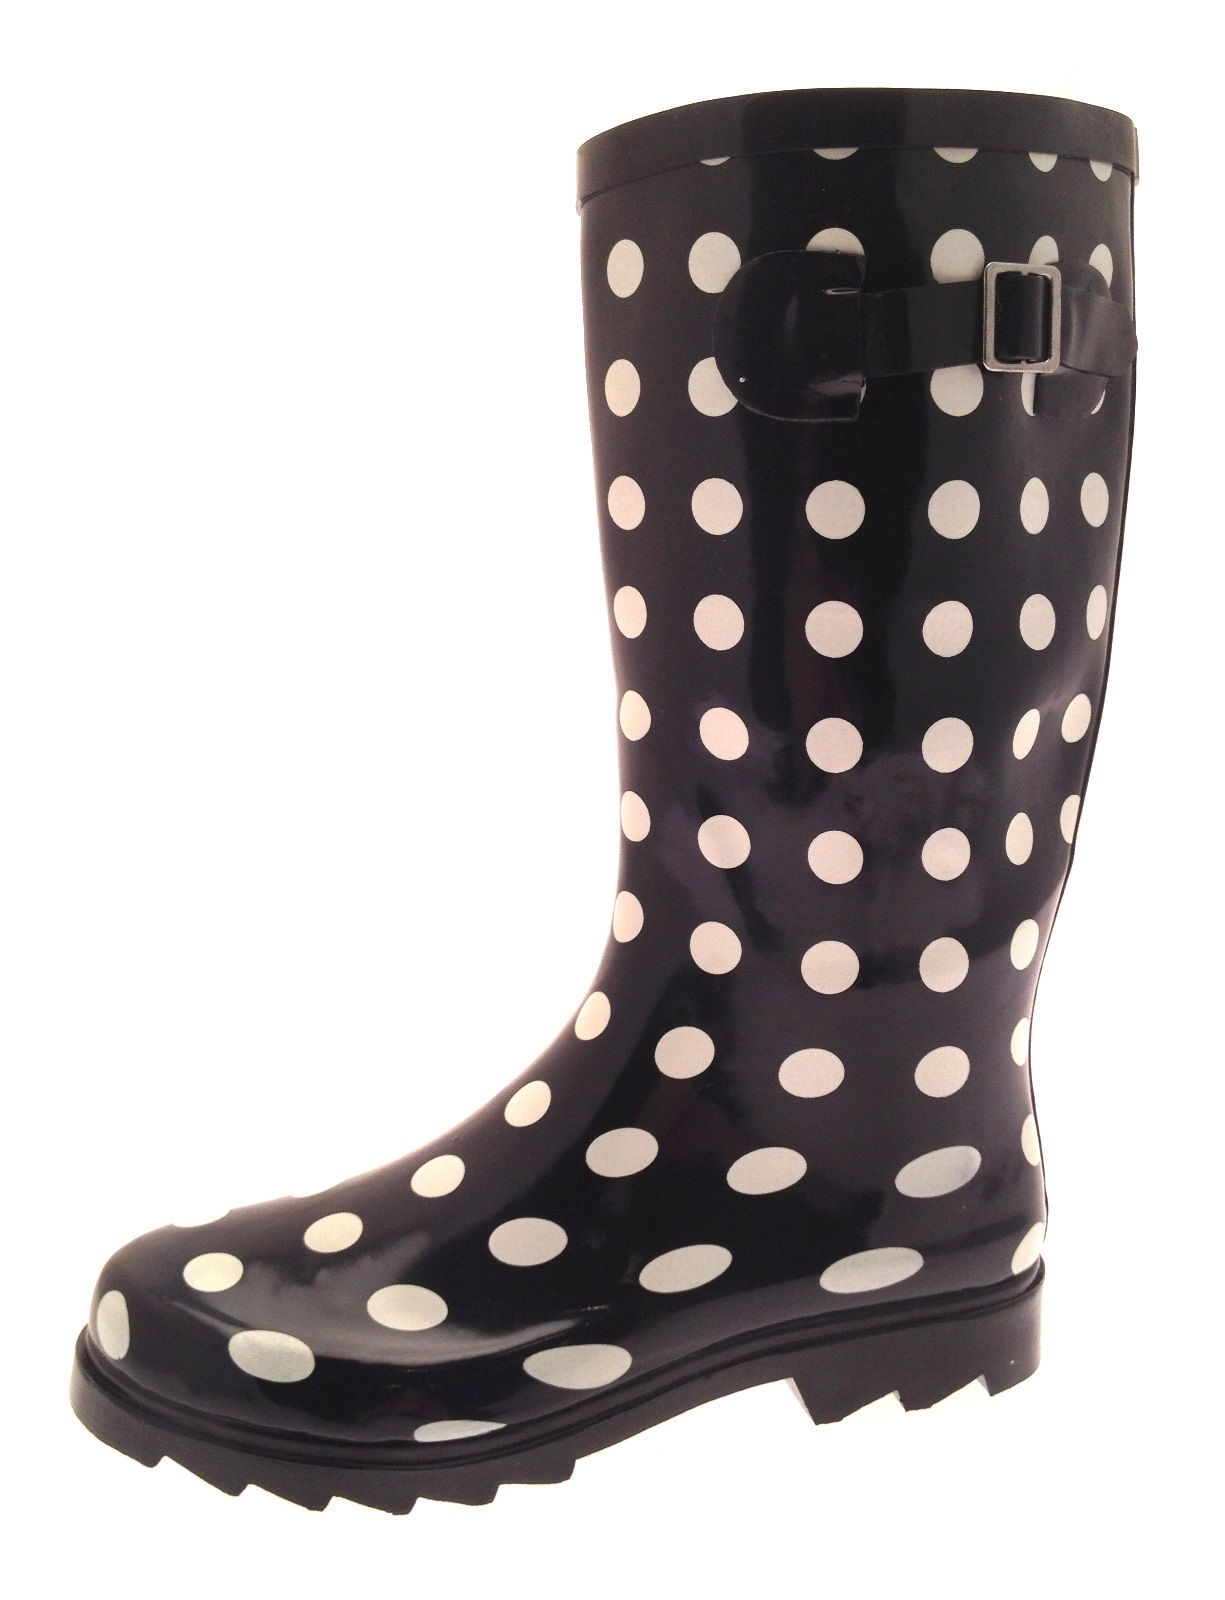 Luxury New Women39s Fashion Multicolor Polka Dots Rubber Rain Boots  EBay